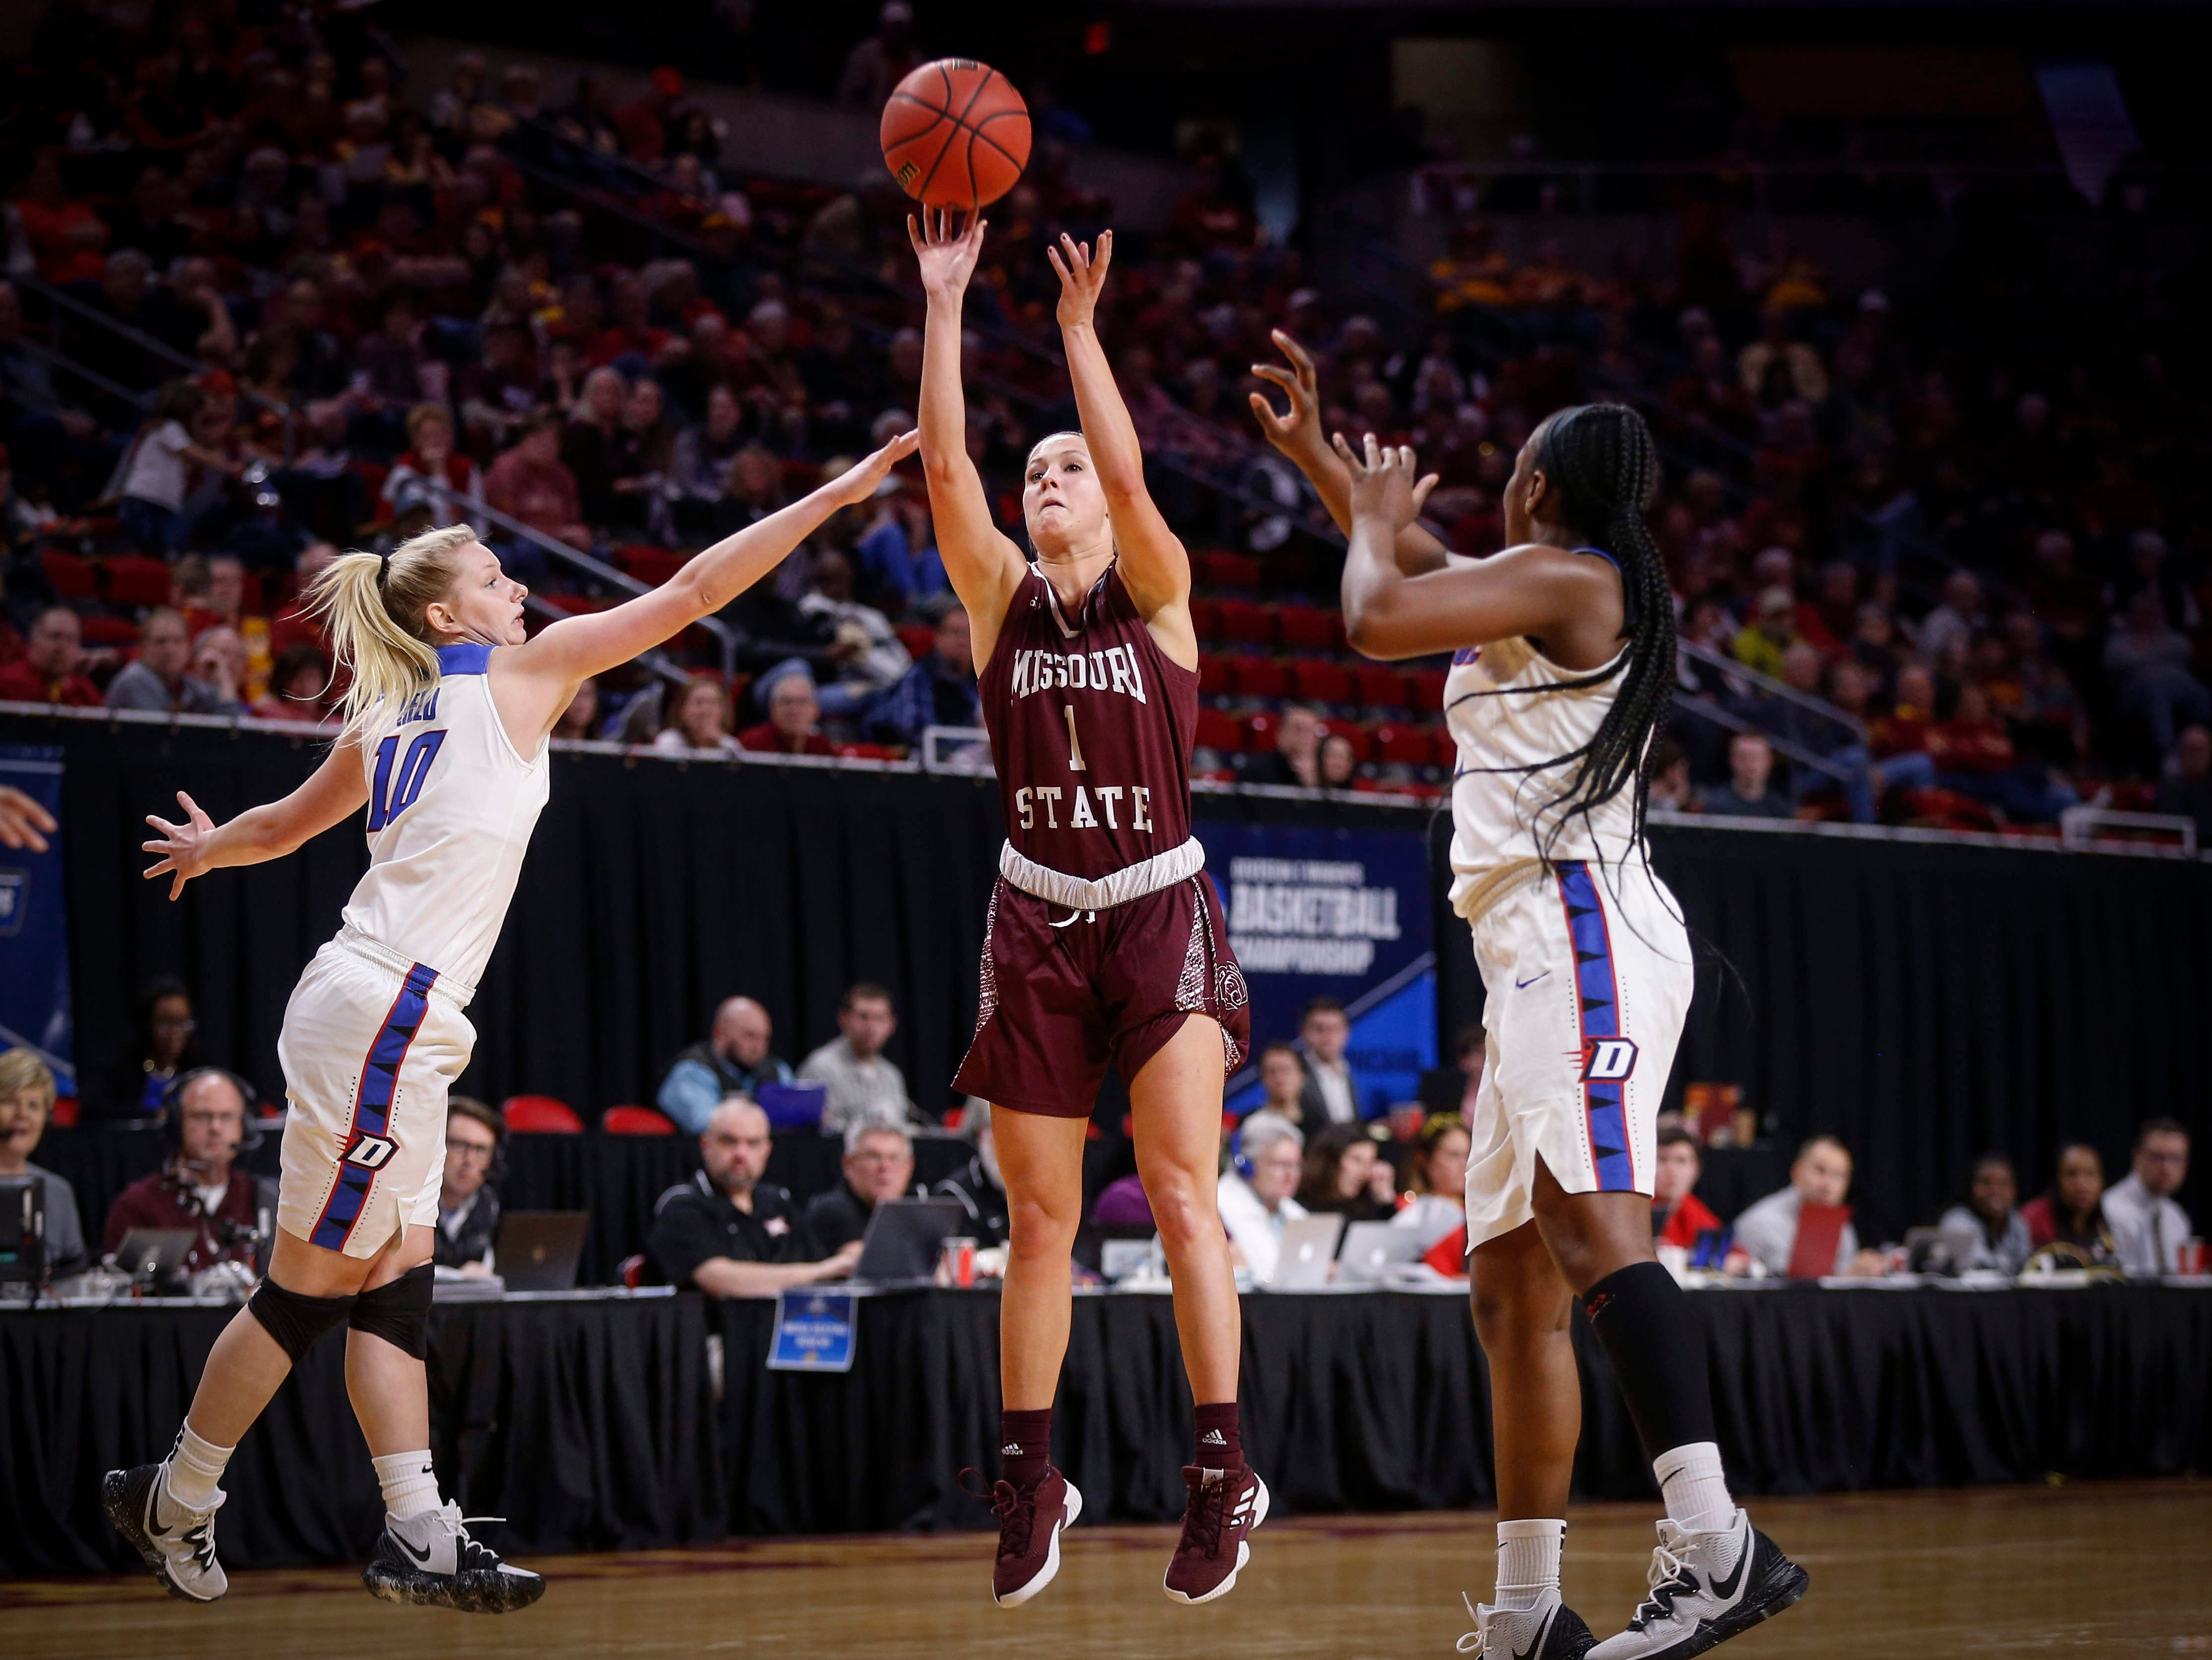 Missouri State senior Danielle Gitzen fires a three-point field goal against DePaul on Saturday, March 23, 2019, at Hilton Coliseum in Ames.